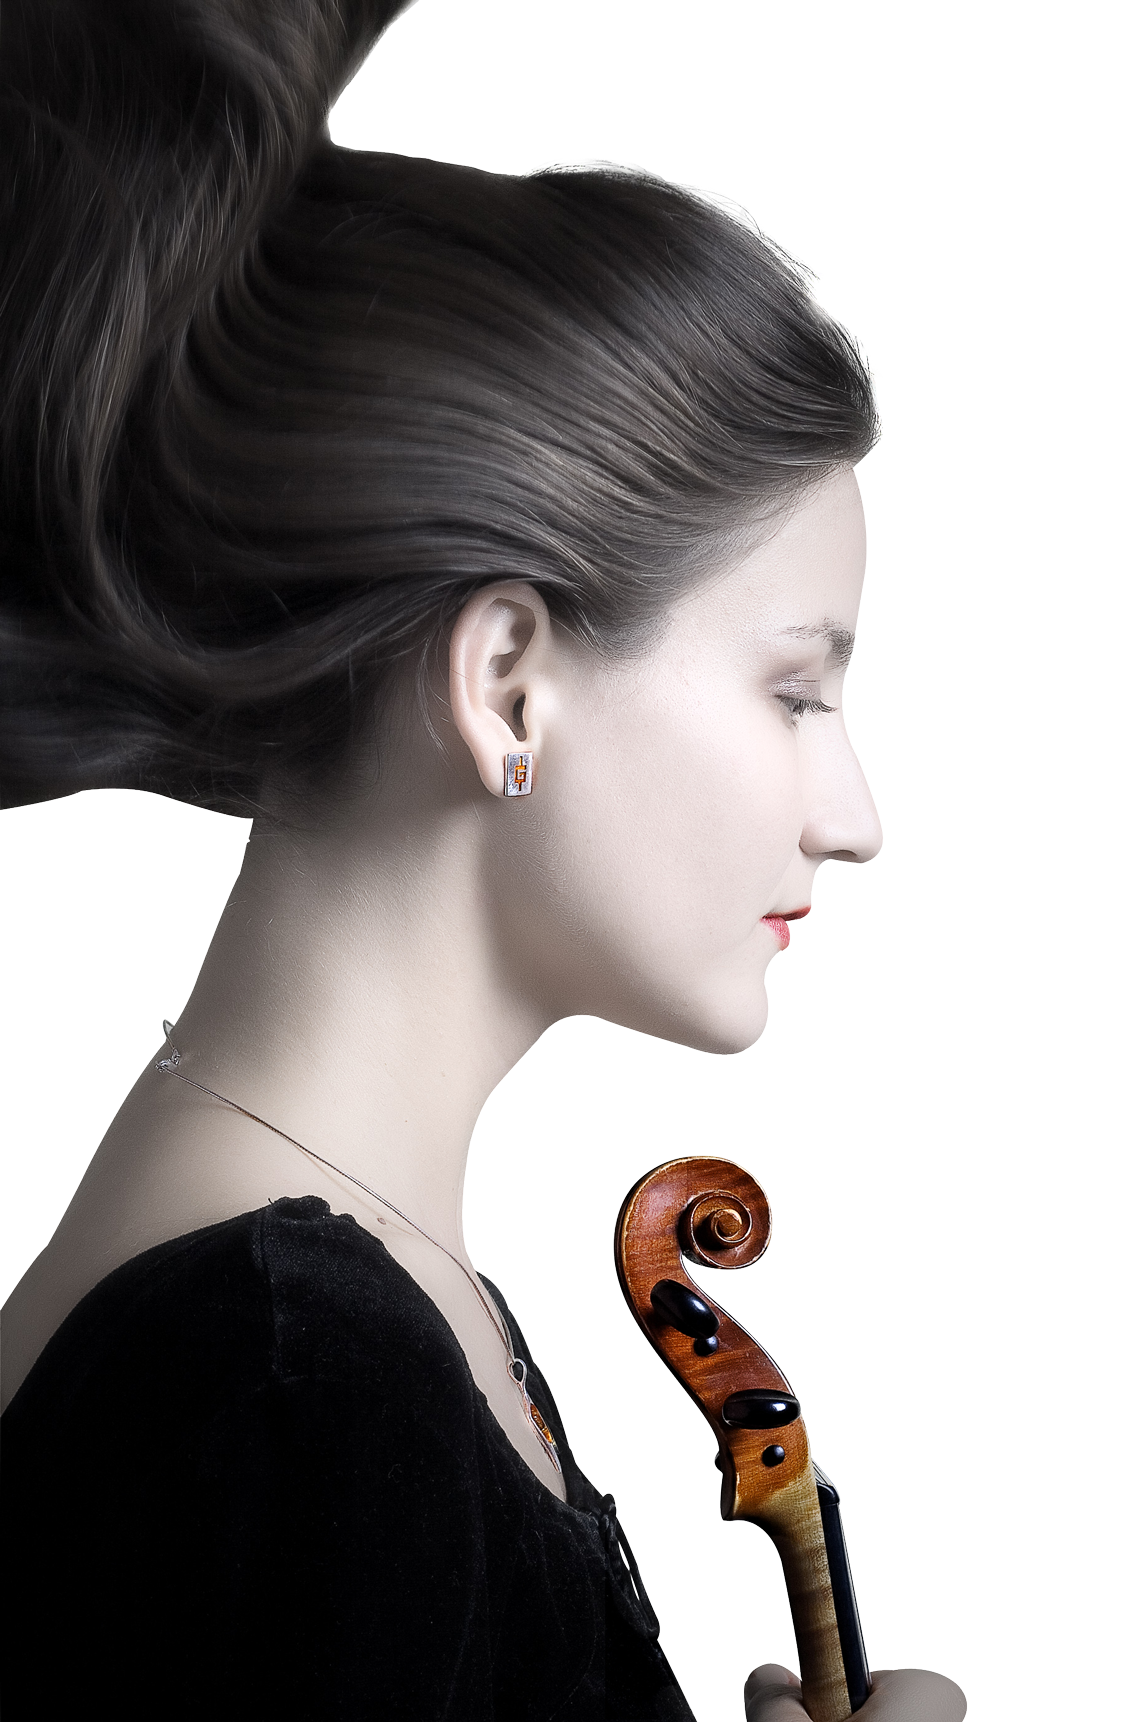 Cool Girl Violin Png - Girl With Violin PNG Image - PngPix